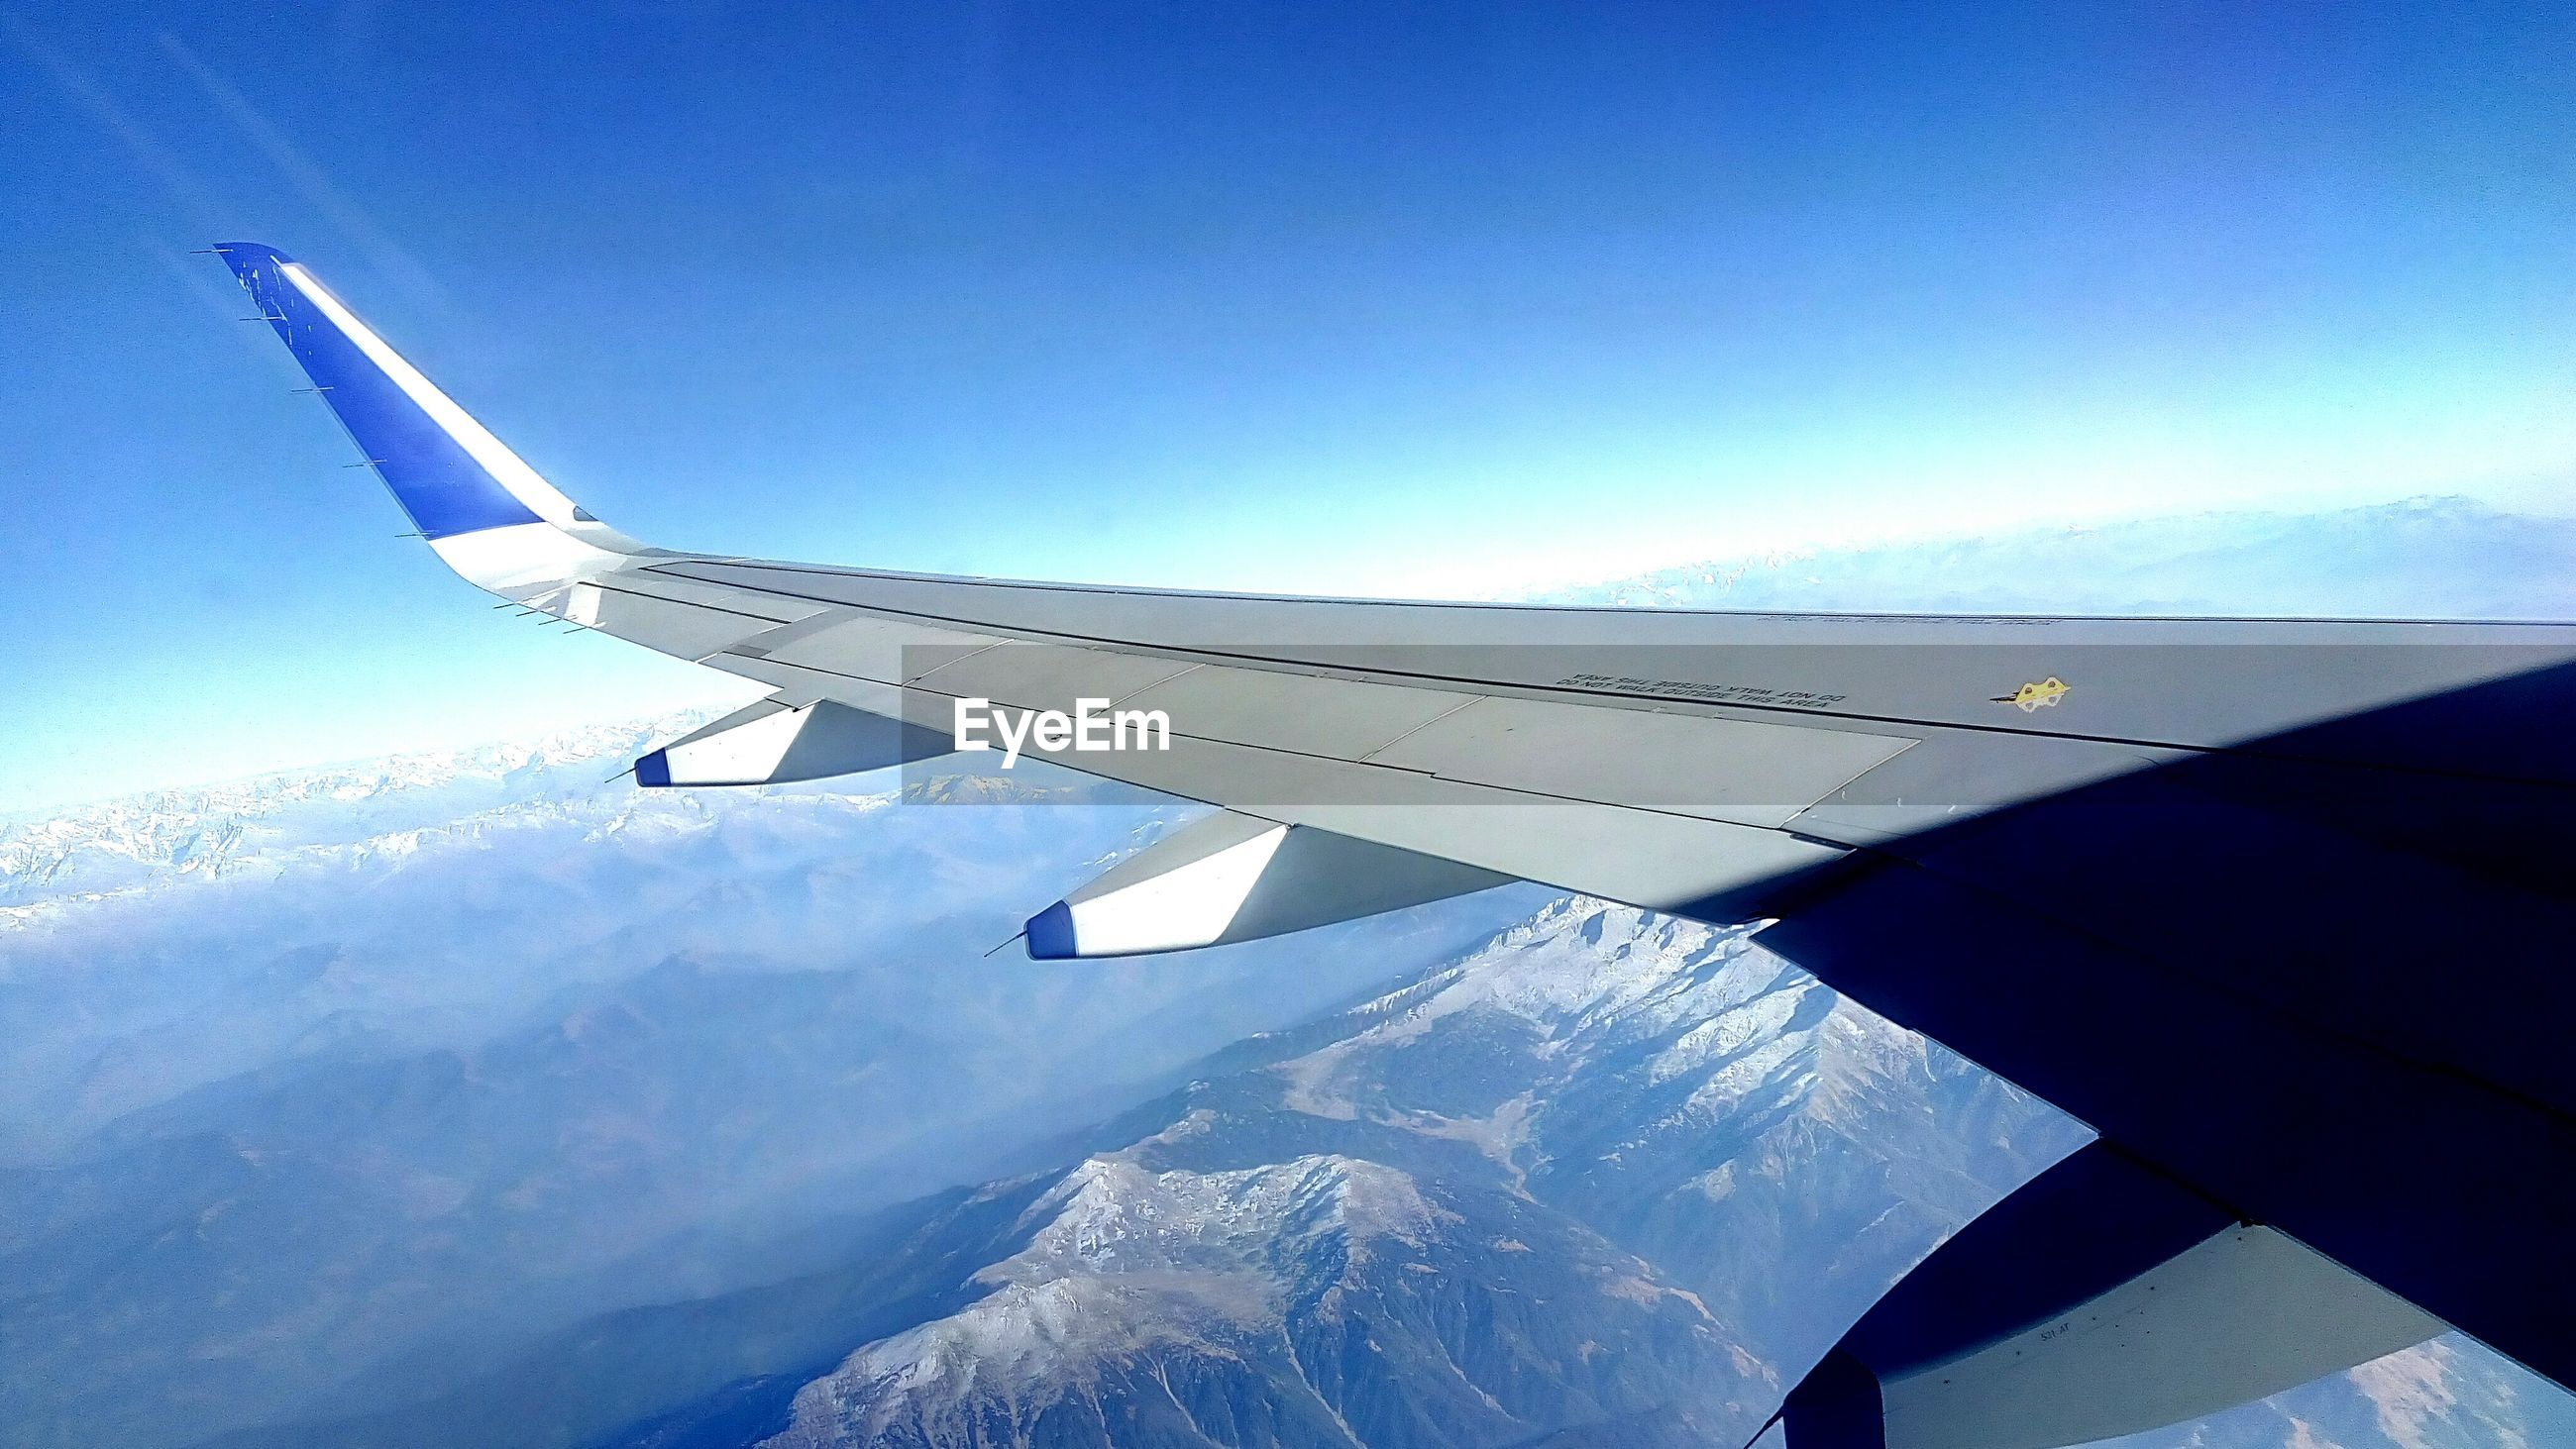 airplane, aerial view, sky, transportation, airplane wing, day, blue, nature, cloud - sky, journey, scenics, travel, aircraft wing, no people, air vehicle, mountain, beauty in nature, snow, cold temperature, outdoors, landscape, mountain range, flying